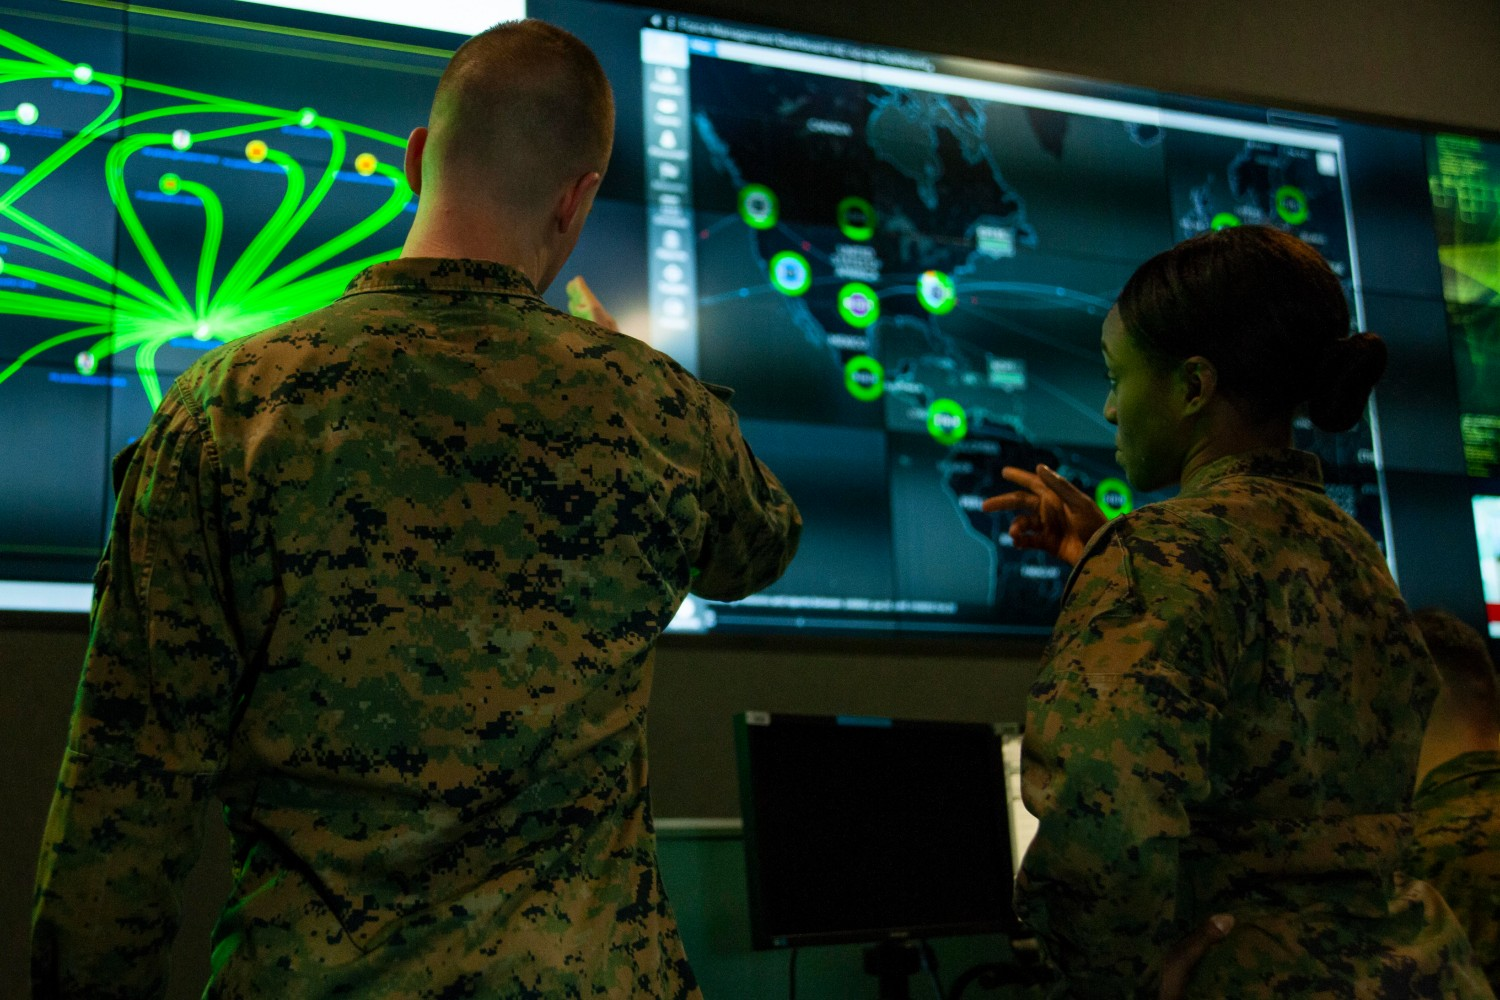 Marines with Marine Corps Forces Cyberspace Command observe computer screens at a cyber operations center at Fort Meade, Md., Feb. 5, 2020.